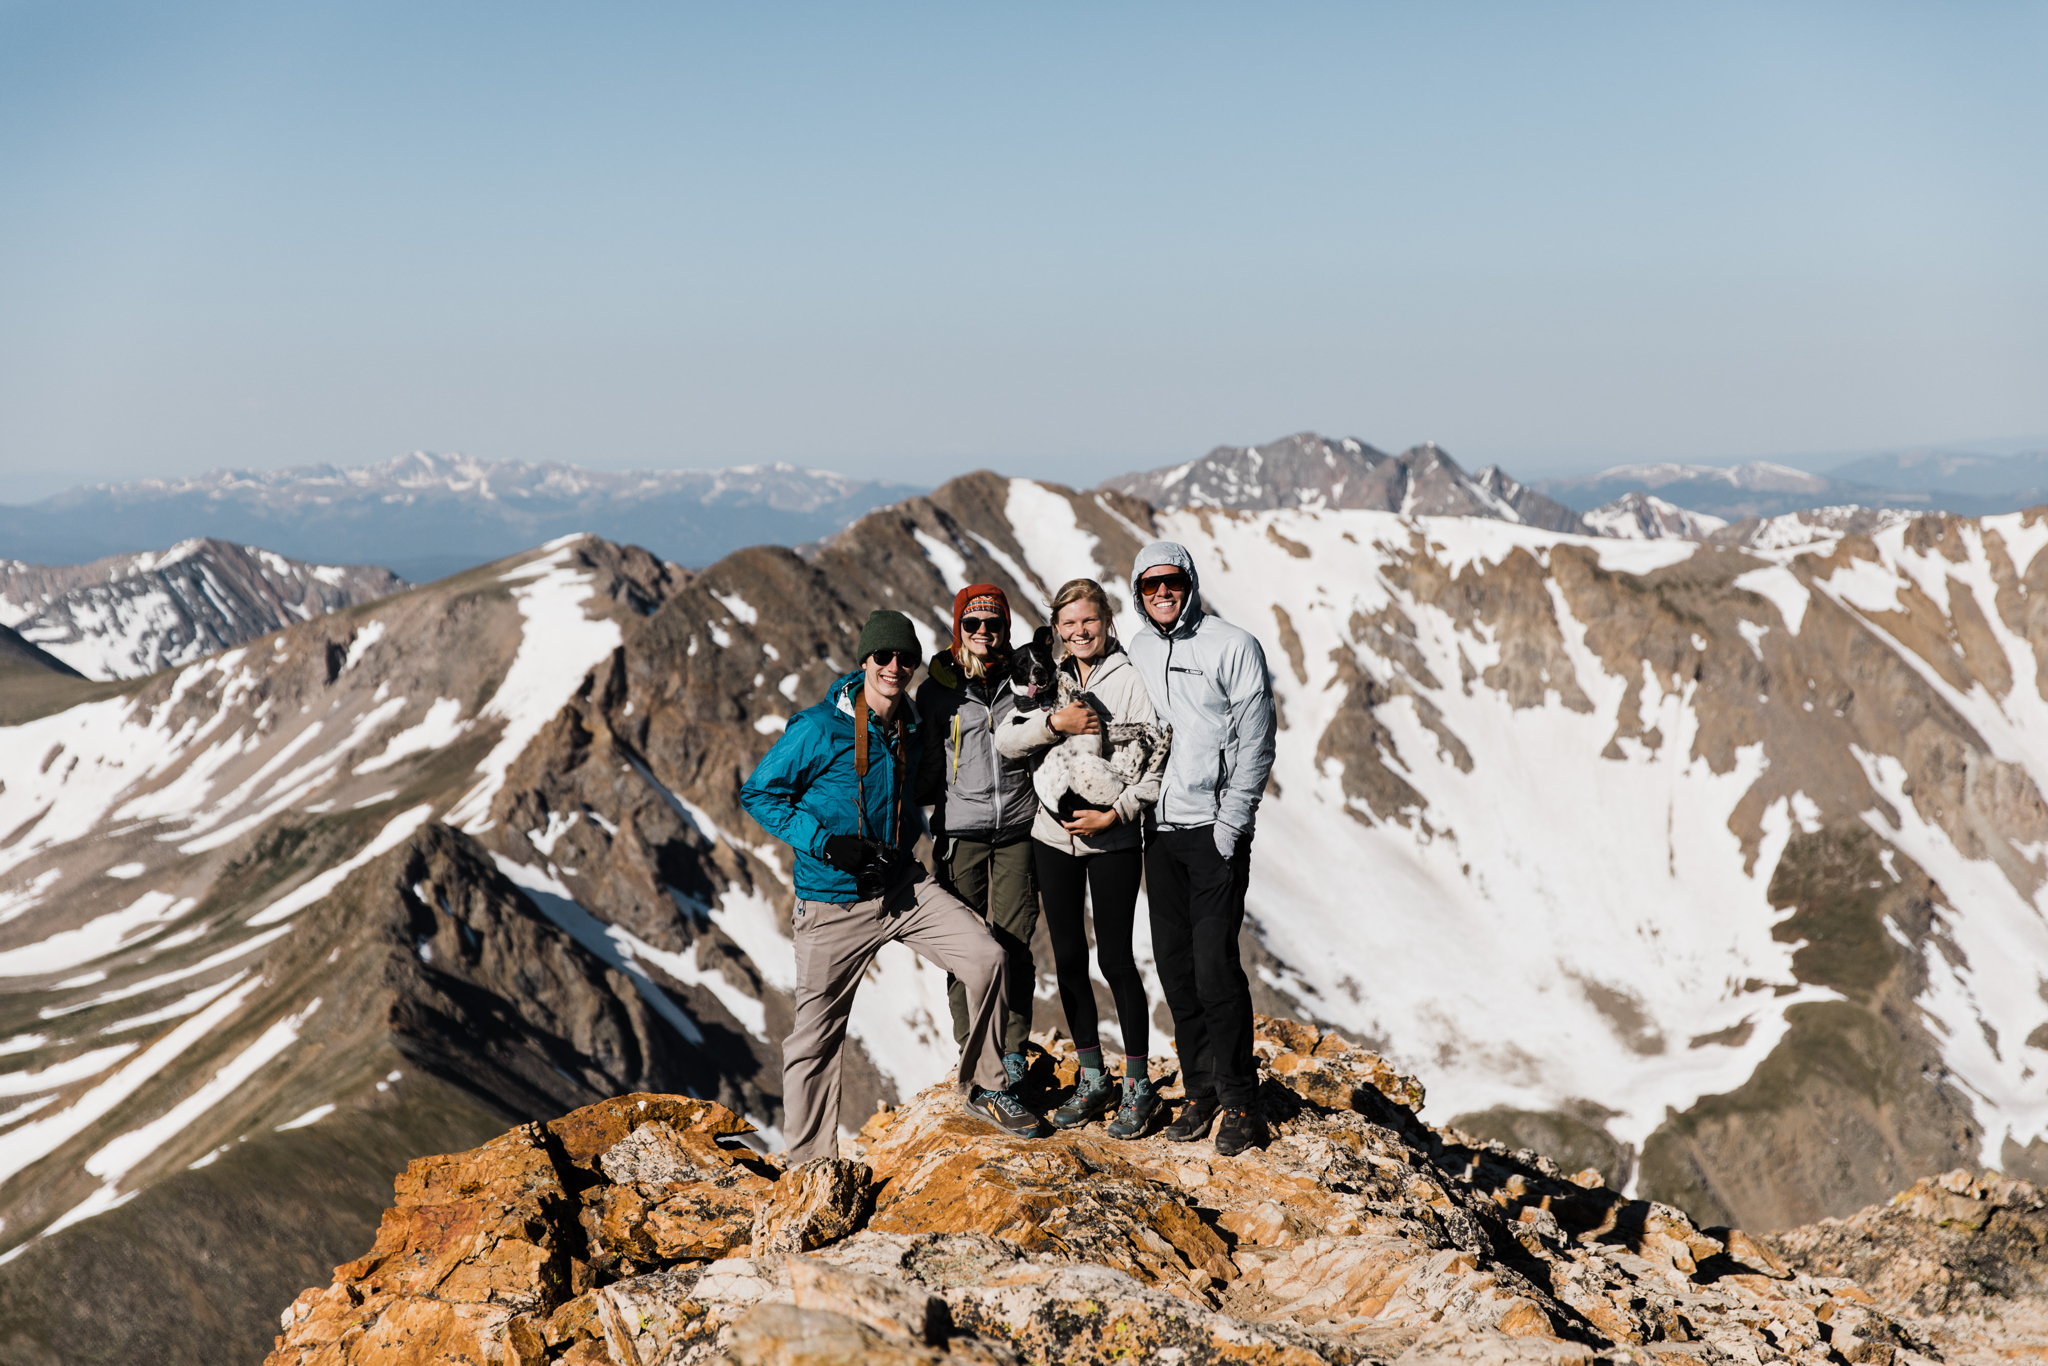 mountain climbing in colorado | utah and california adventure elopement photographers | the hearnes adventure photography | www.thehearnes.com